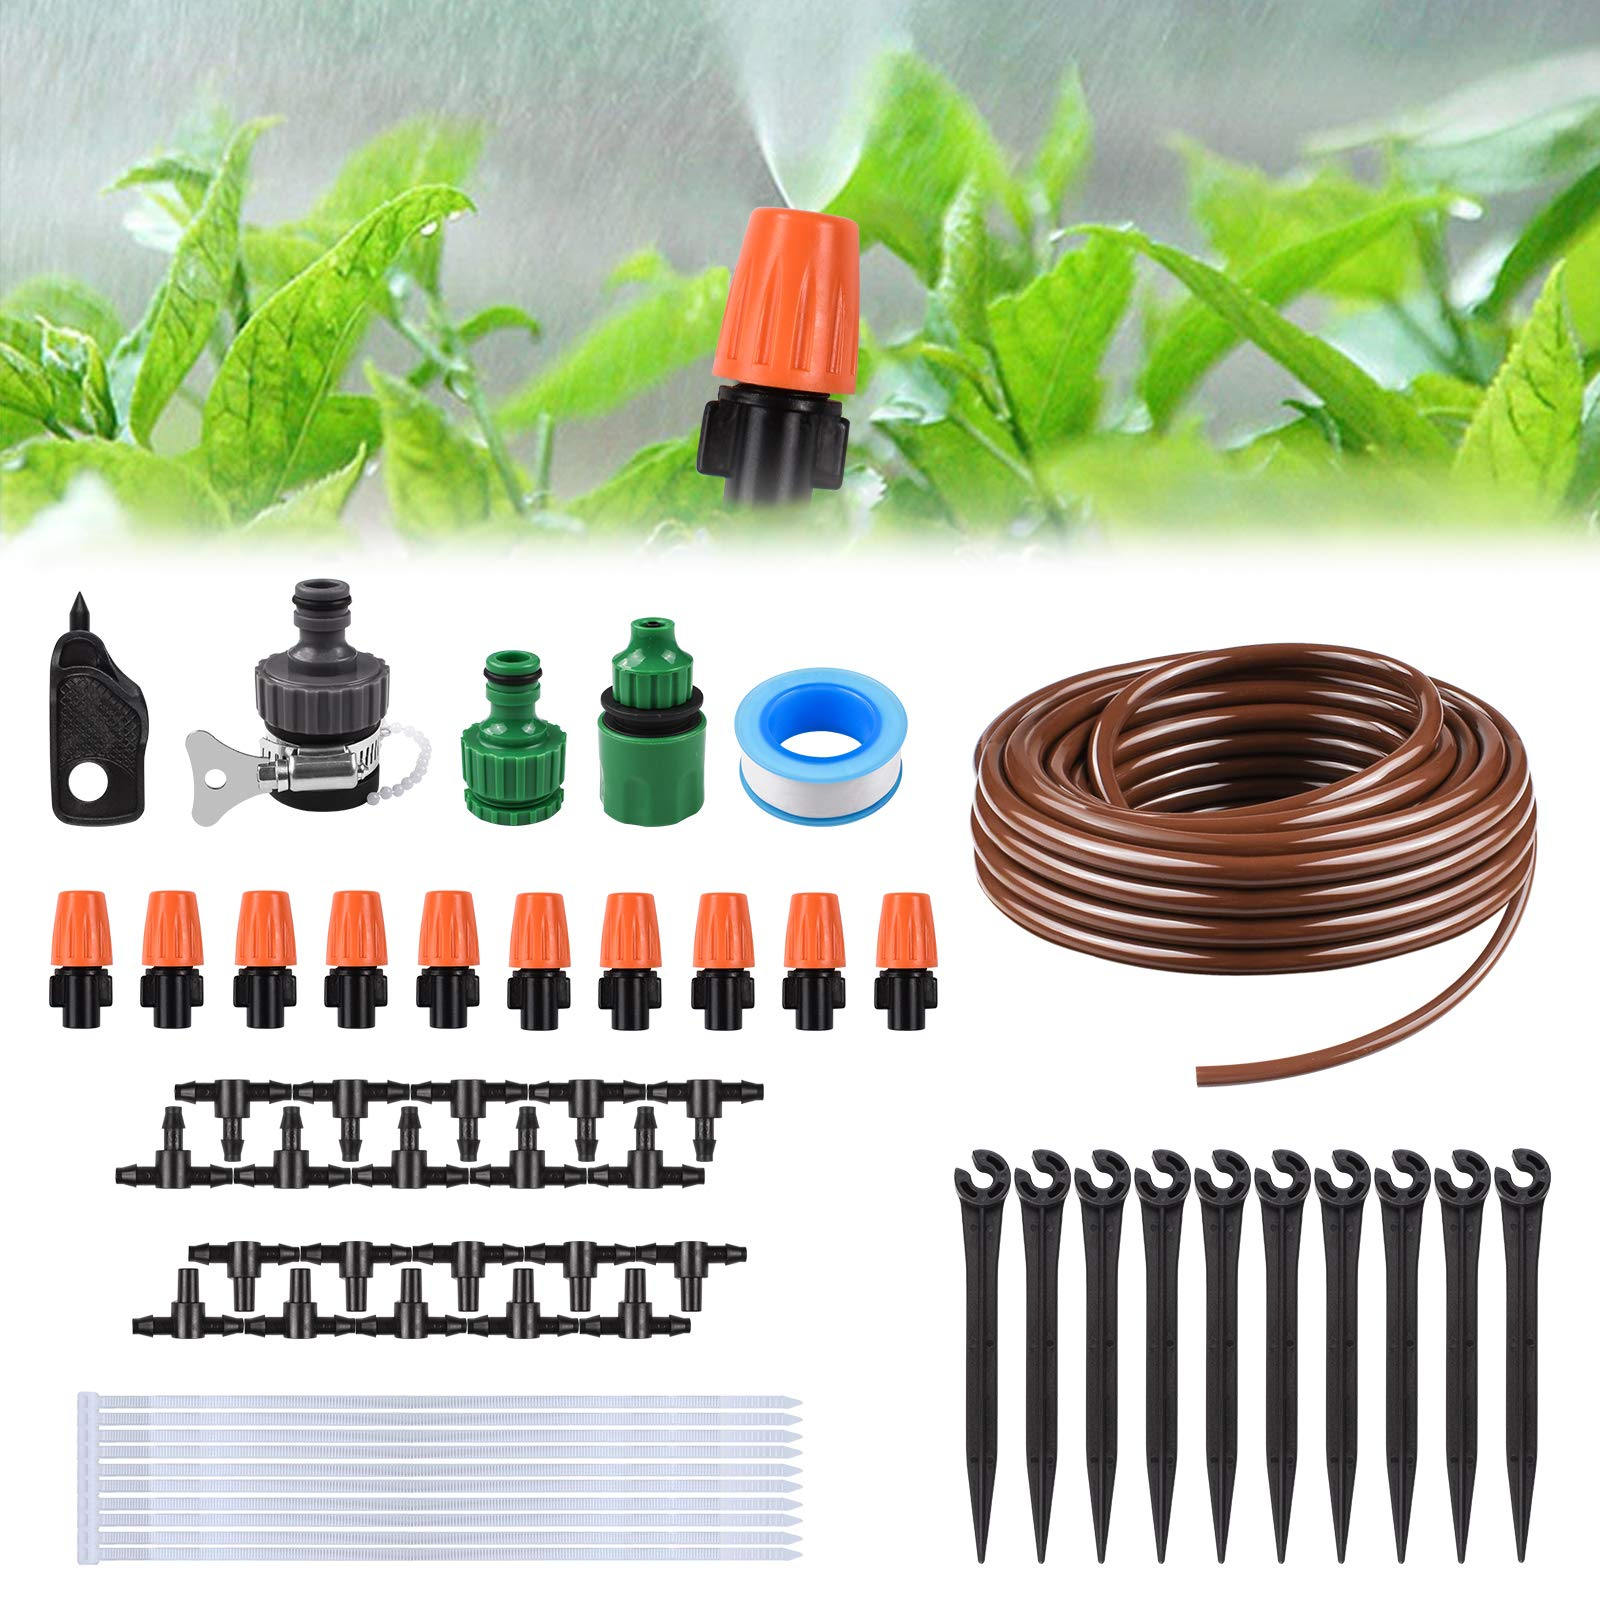 KORAM Drip Irrigation Kits, 1/4-inch Blank Distribution Tubing Garden Irrigation System DIY Saving Water Irrigation Equipment Set with 10 Mist Nozzles Suit for Garden Greenhouse, Flower Bed, Patio